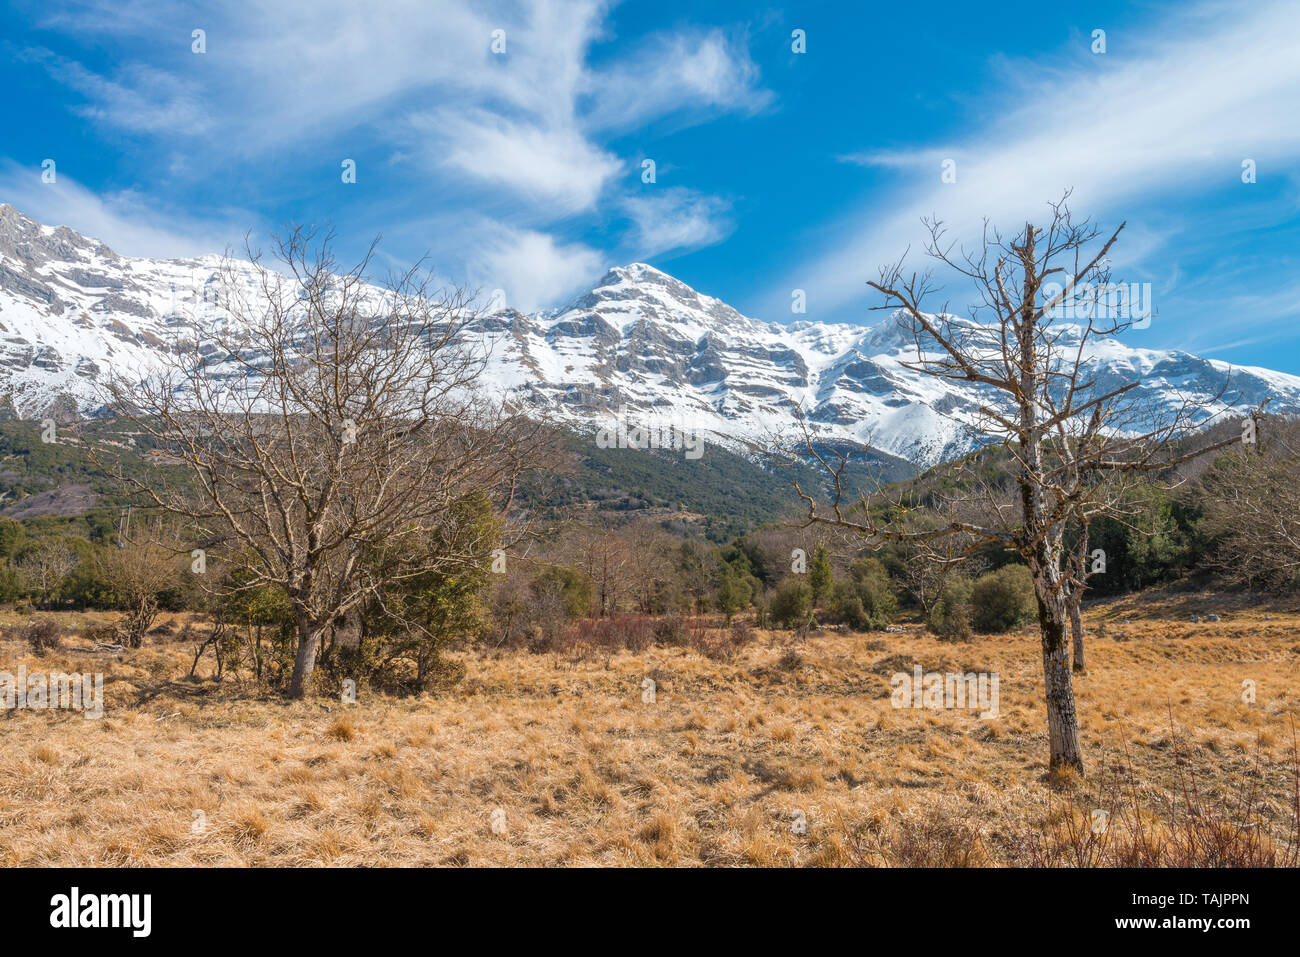 Snowcapped mountains in the Greek Alps, snow-laden mountains of Greece tower above the grassy meadows still yellow after the snowmelt. - Stock Image